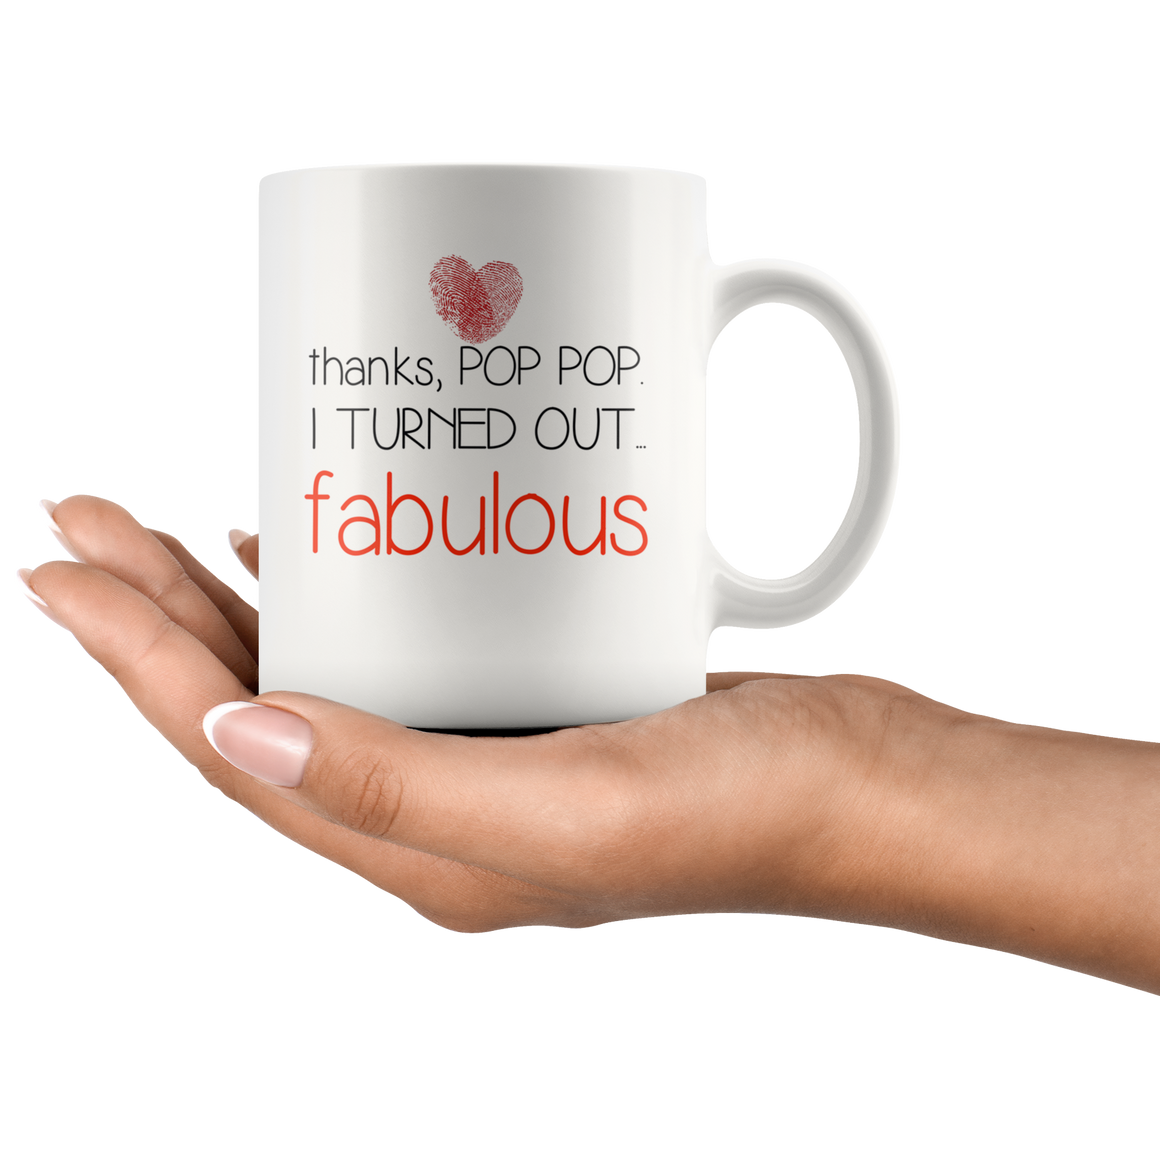 Thanks pop pop I turned out fabulous coffee mug gift - mother days gift